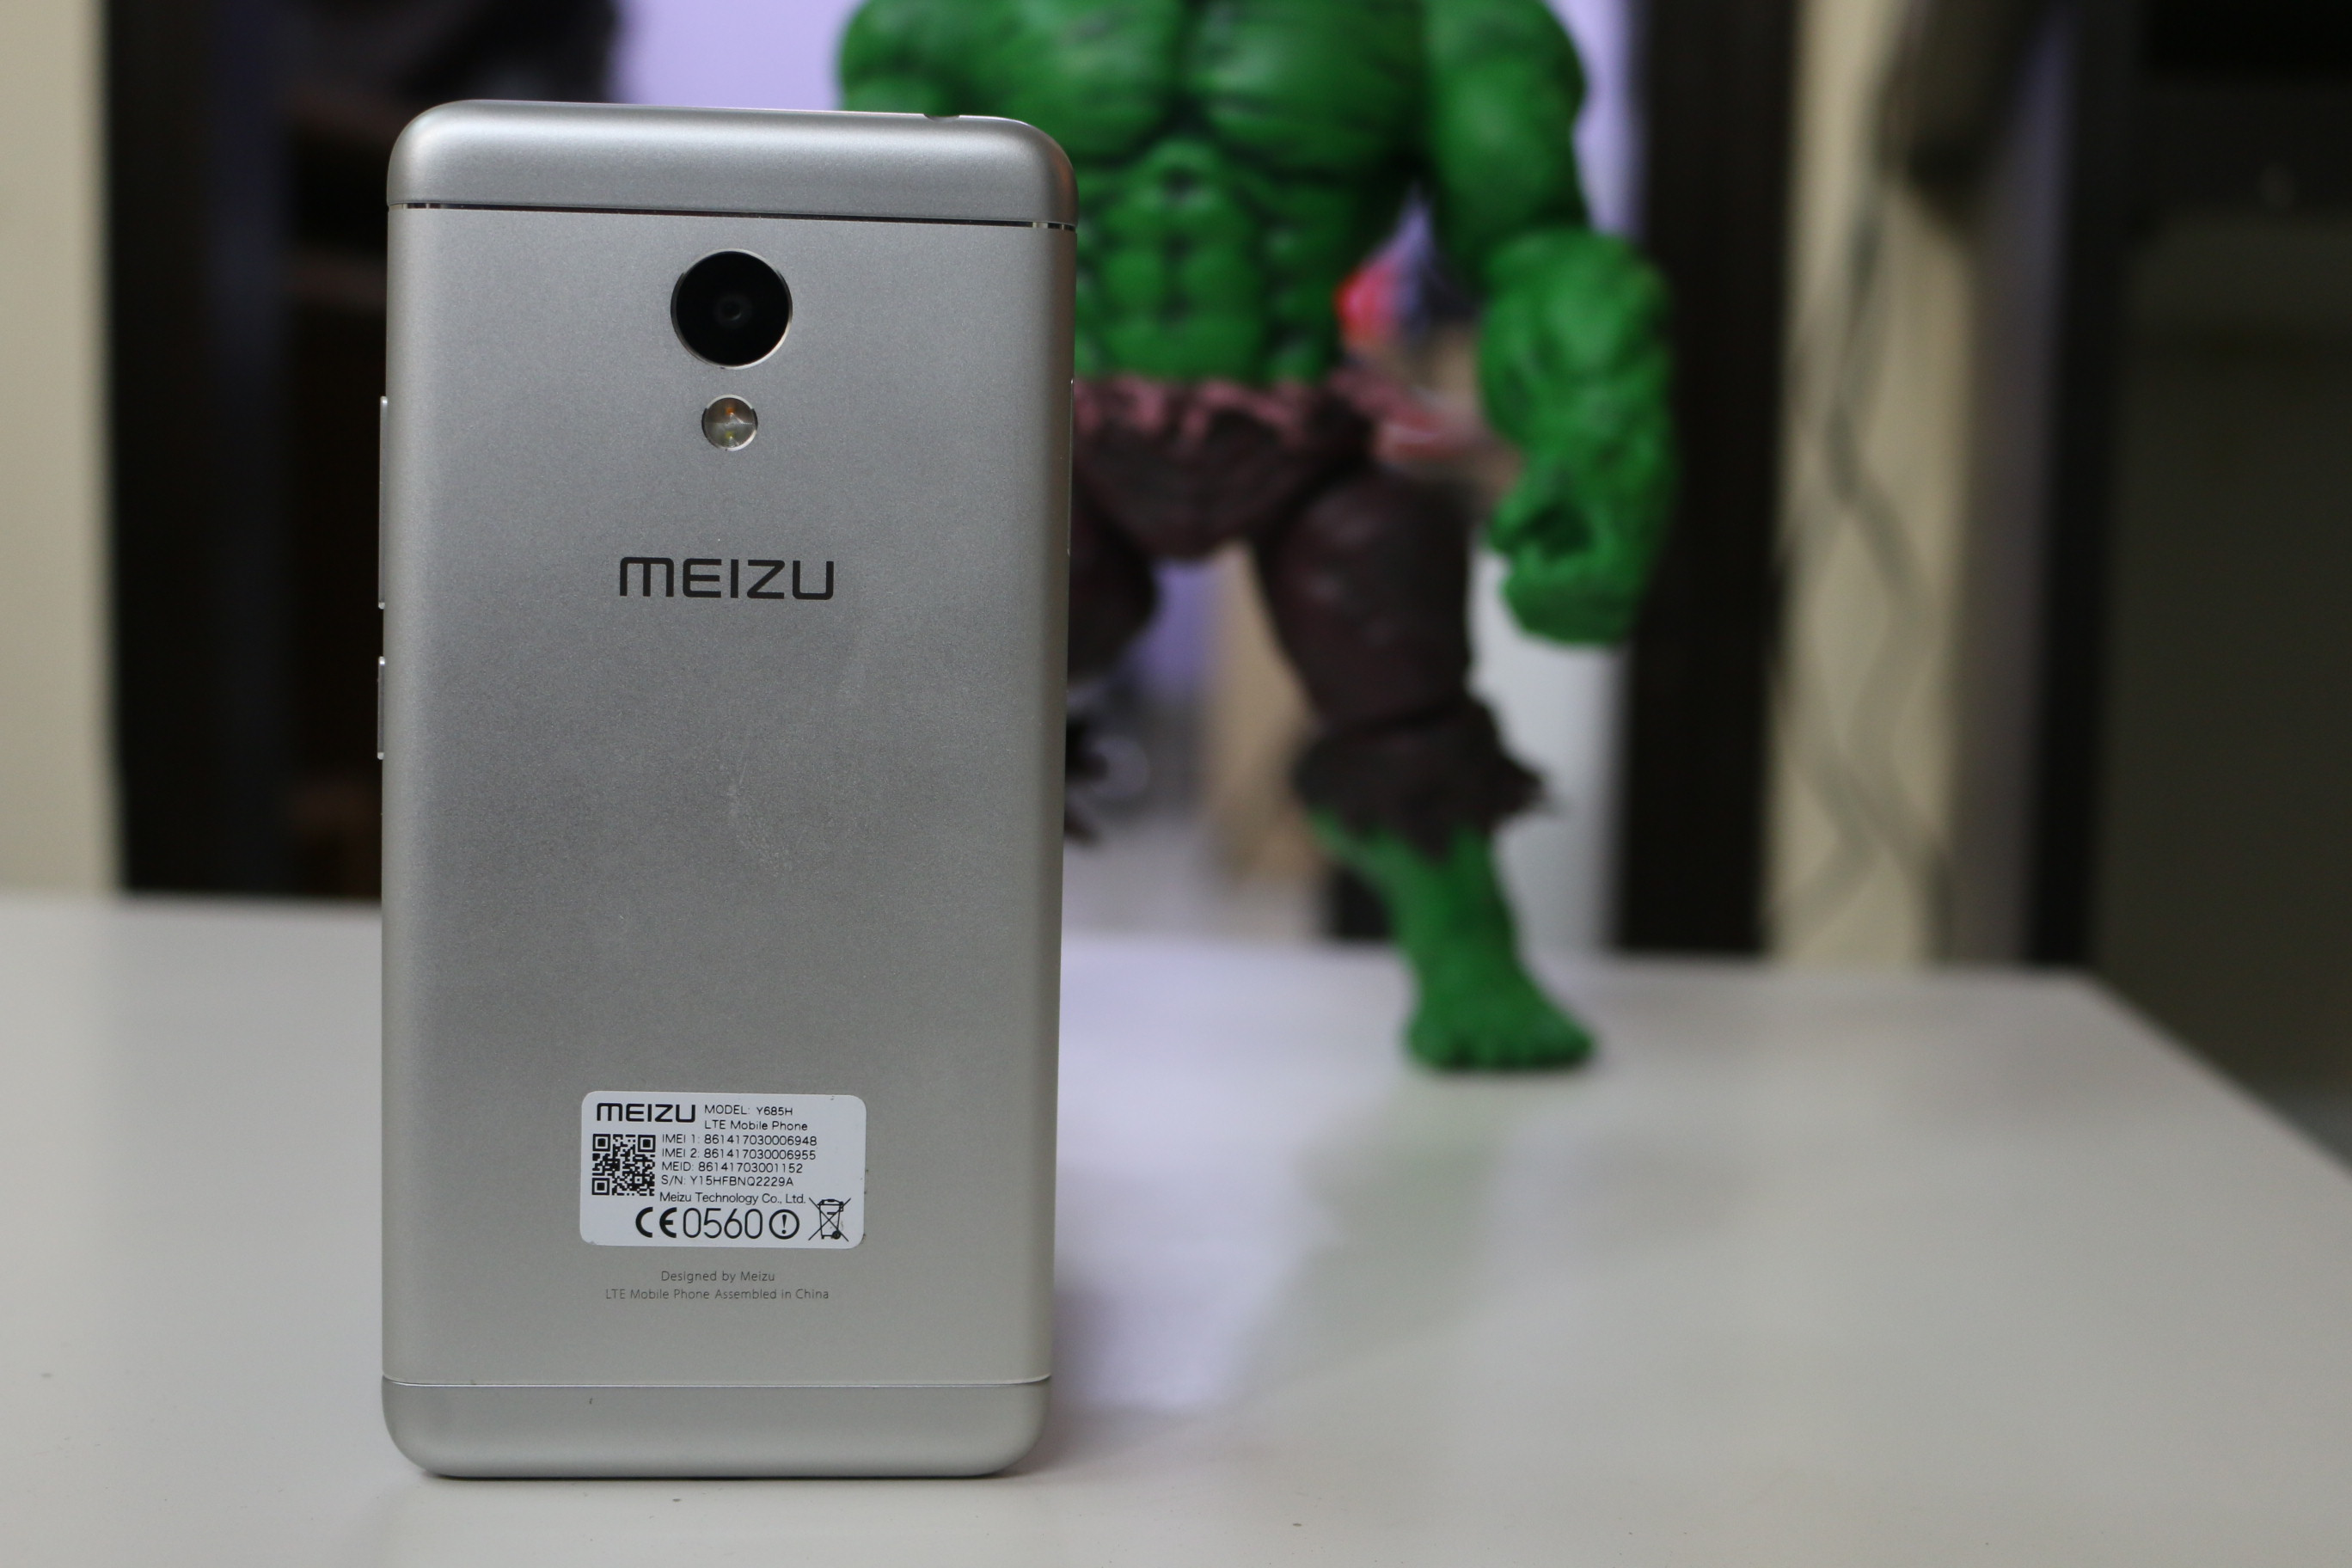 Review of the smartphone Meizu M3S